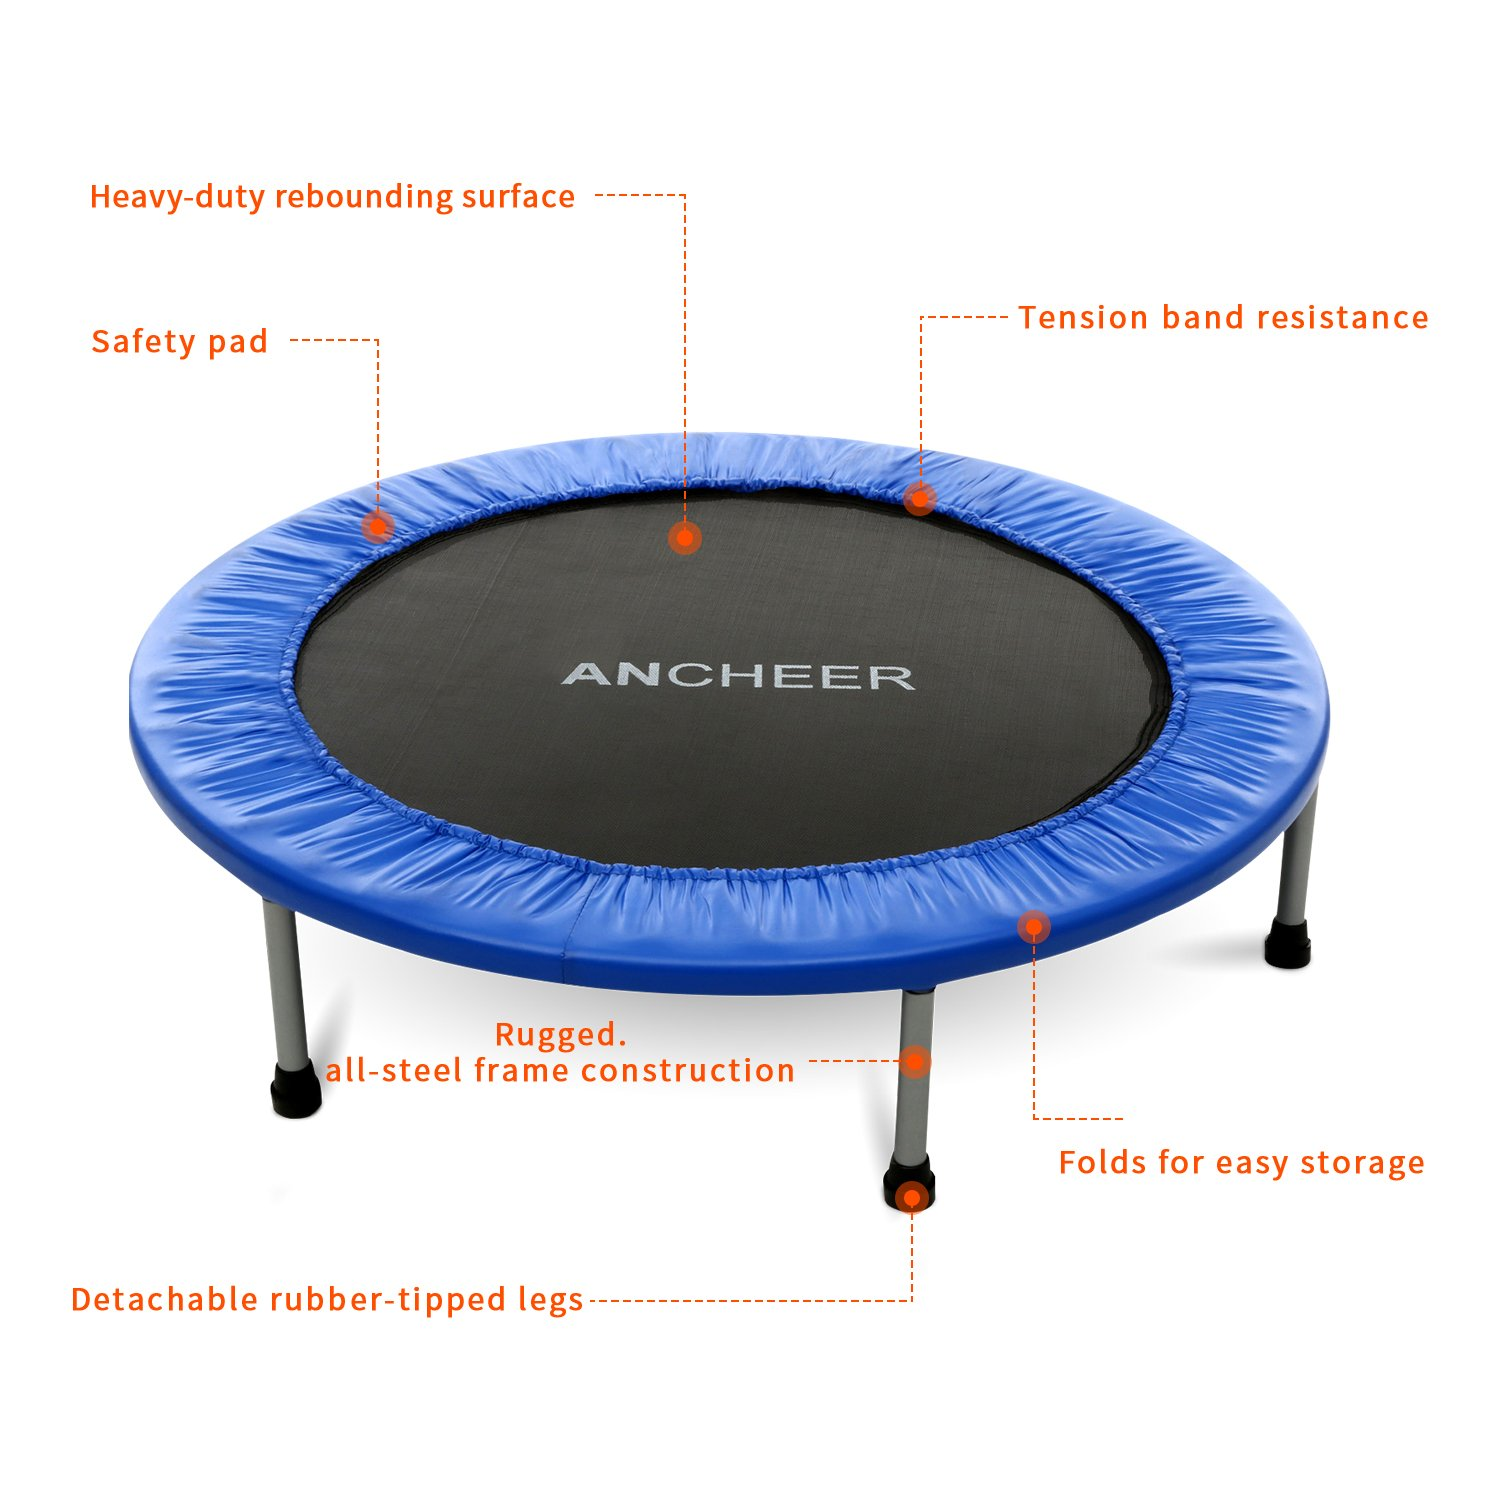 ANCHEER Max Load 220lbs Rebounder Trampoline with Safety Pad for Indoor Garden Workout Cardio Training (2 Sizes: 38 inch/40 inch, Two Modes: Folding/Not Folding) by ANCHEER (Image #5)